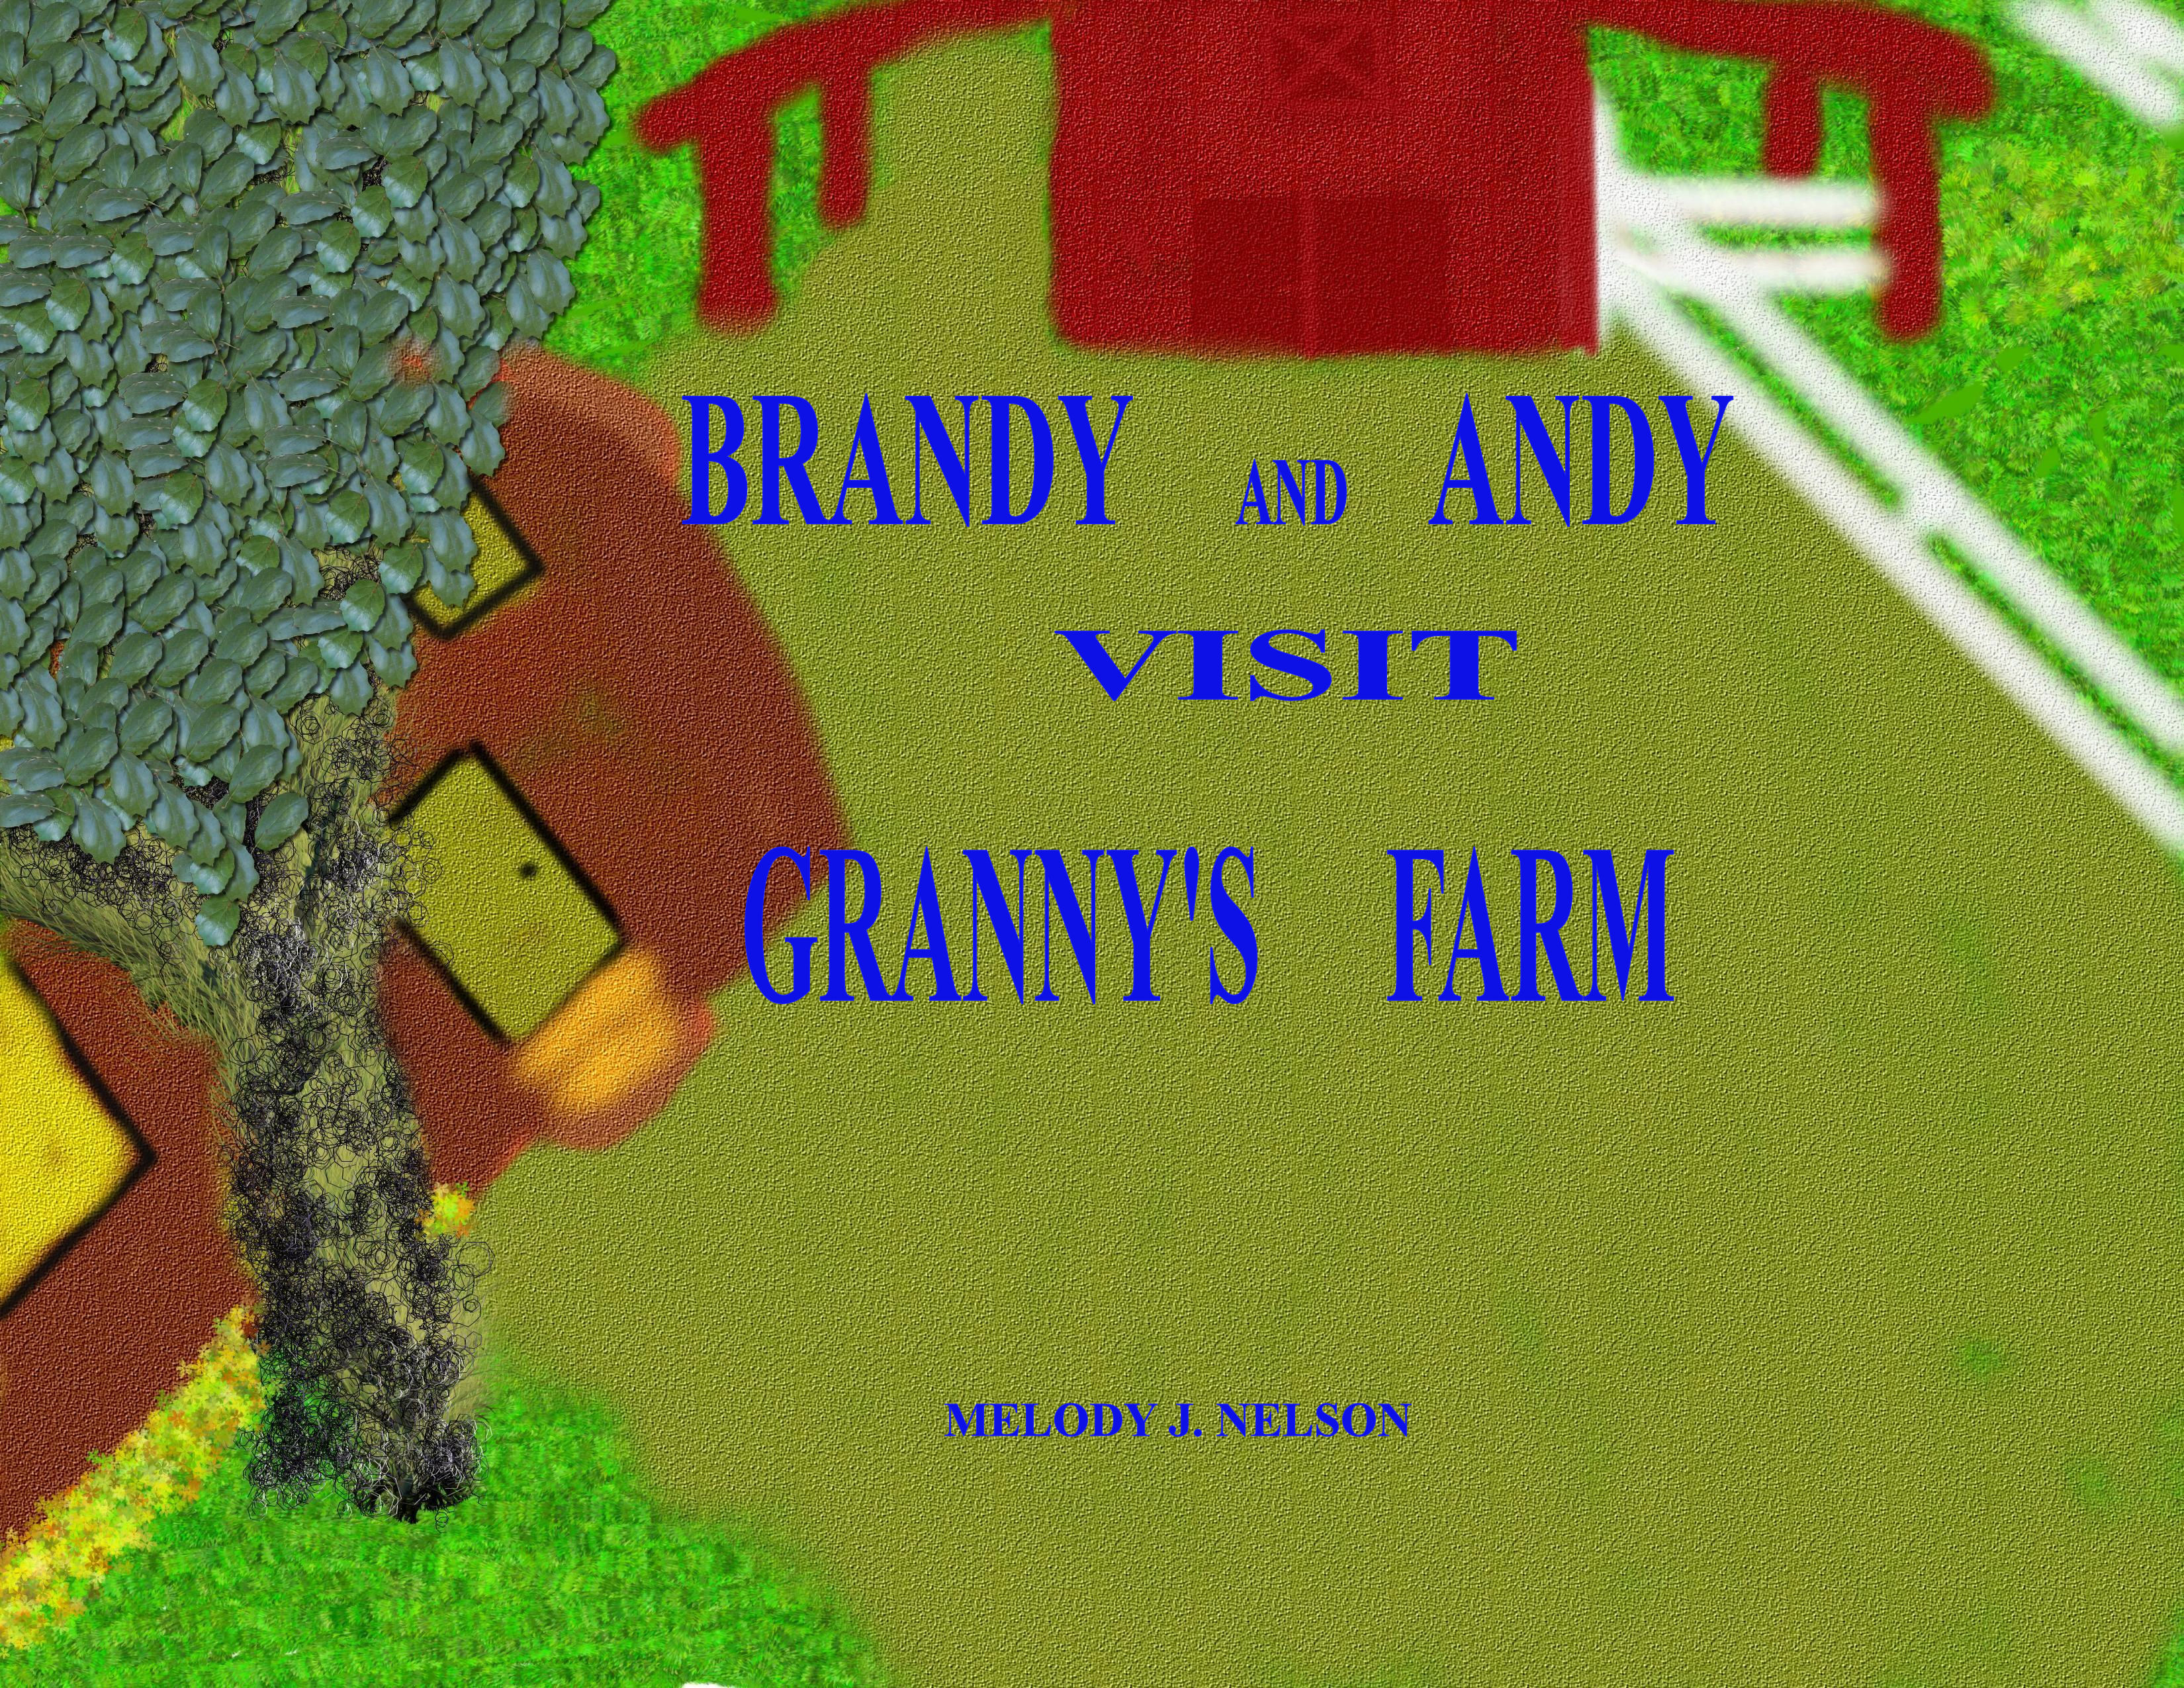 Brandy and Andy Visit Granny's Farm.jpg